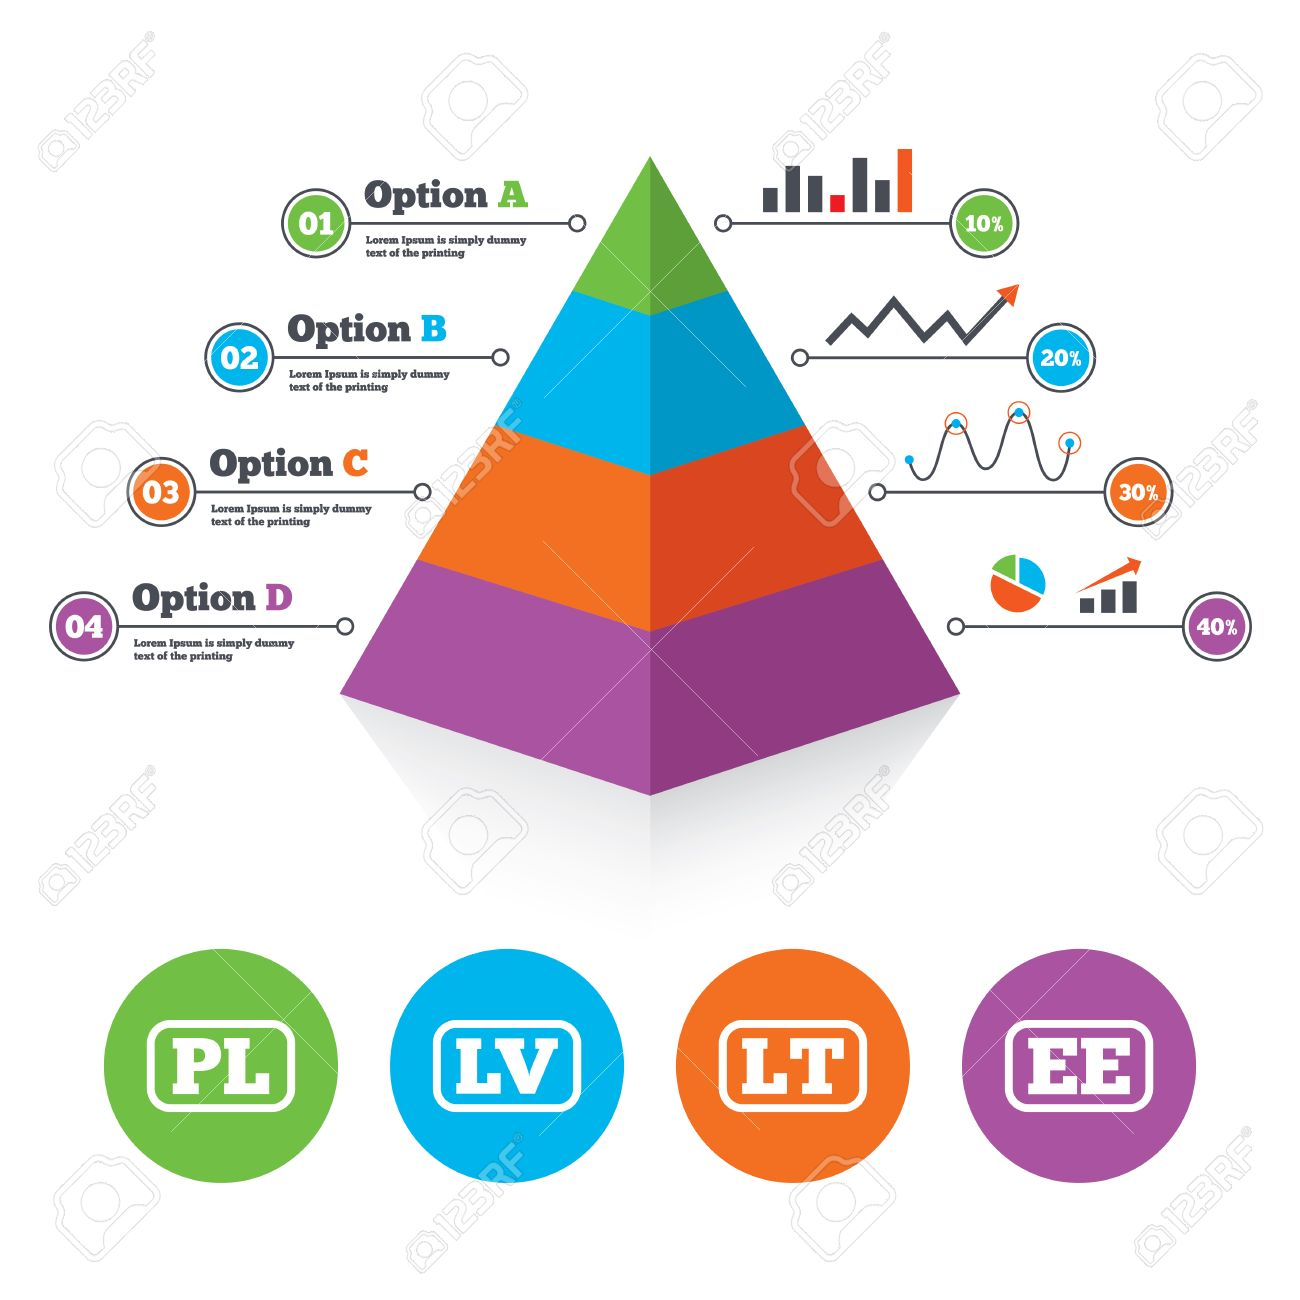 Pyramid Chart Template. Language Icons. PL, LV, LT And EE ...